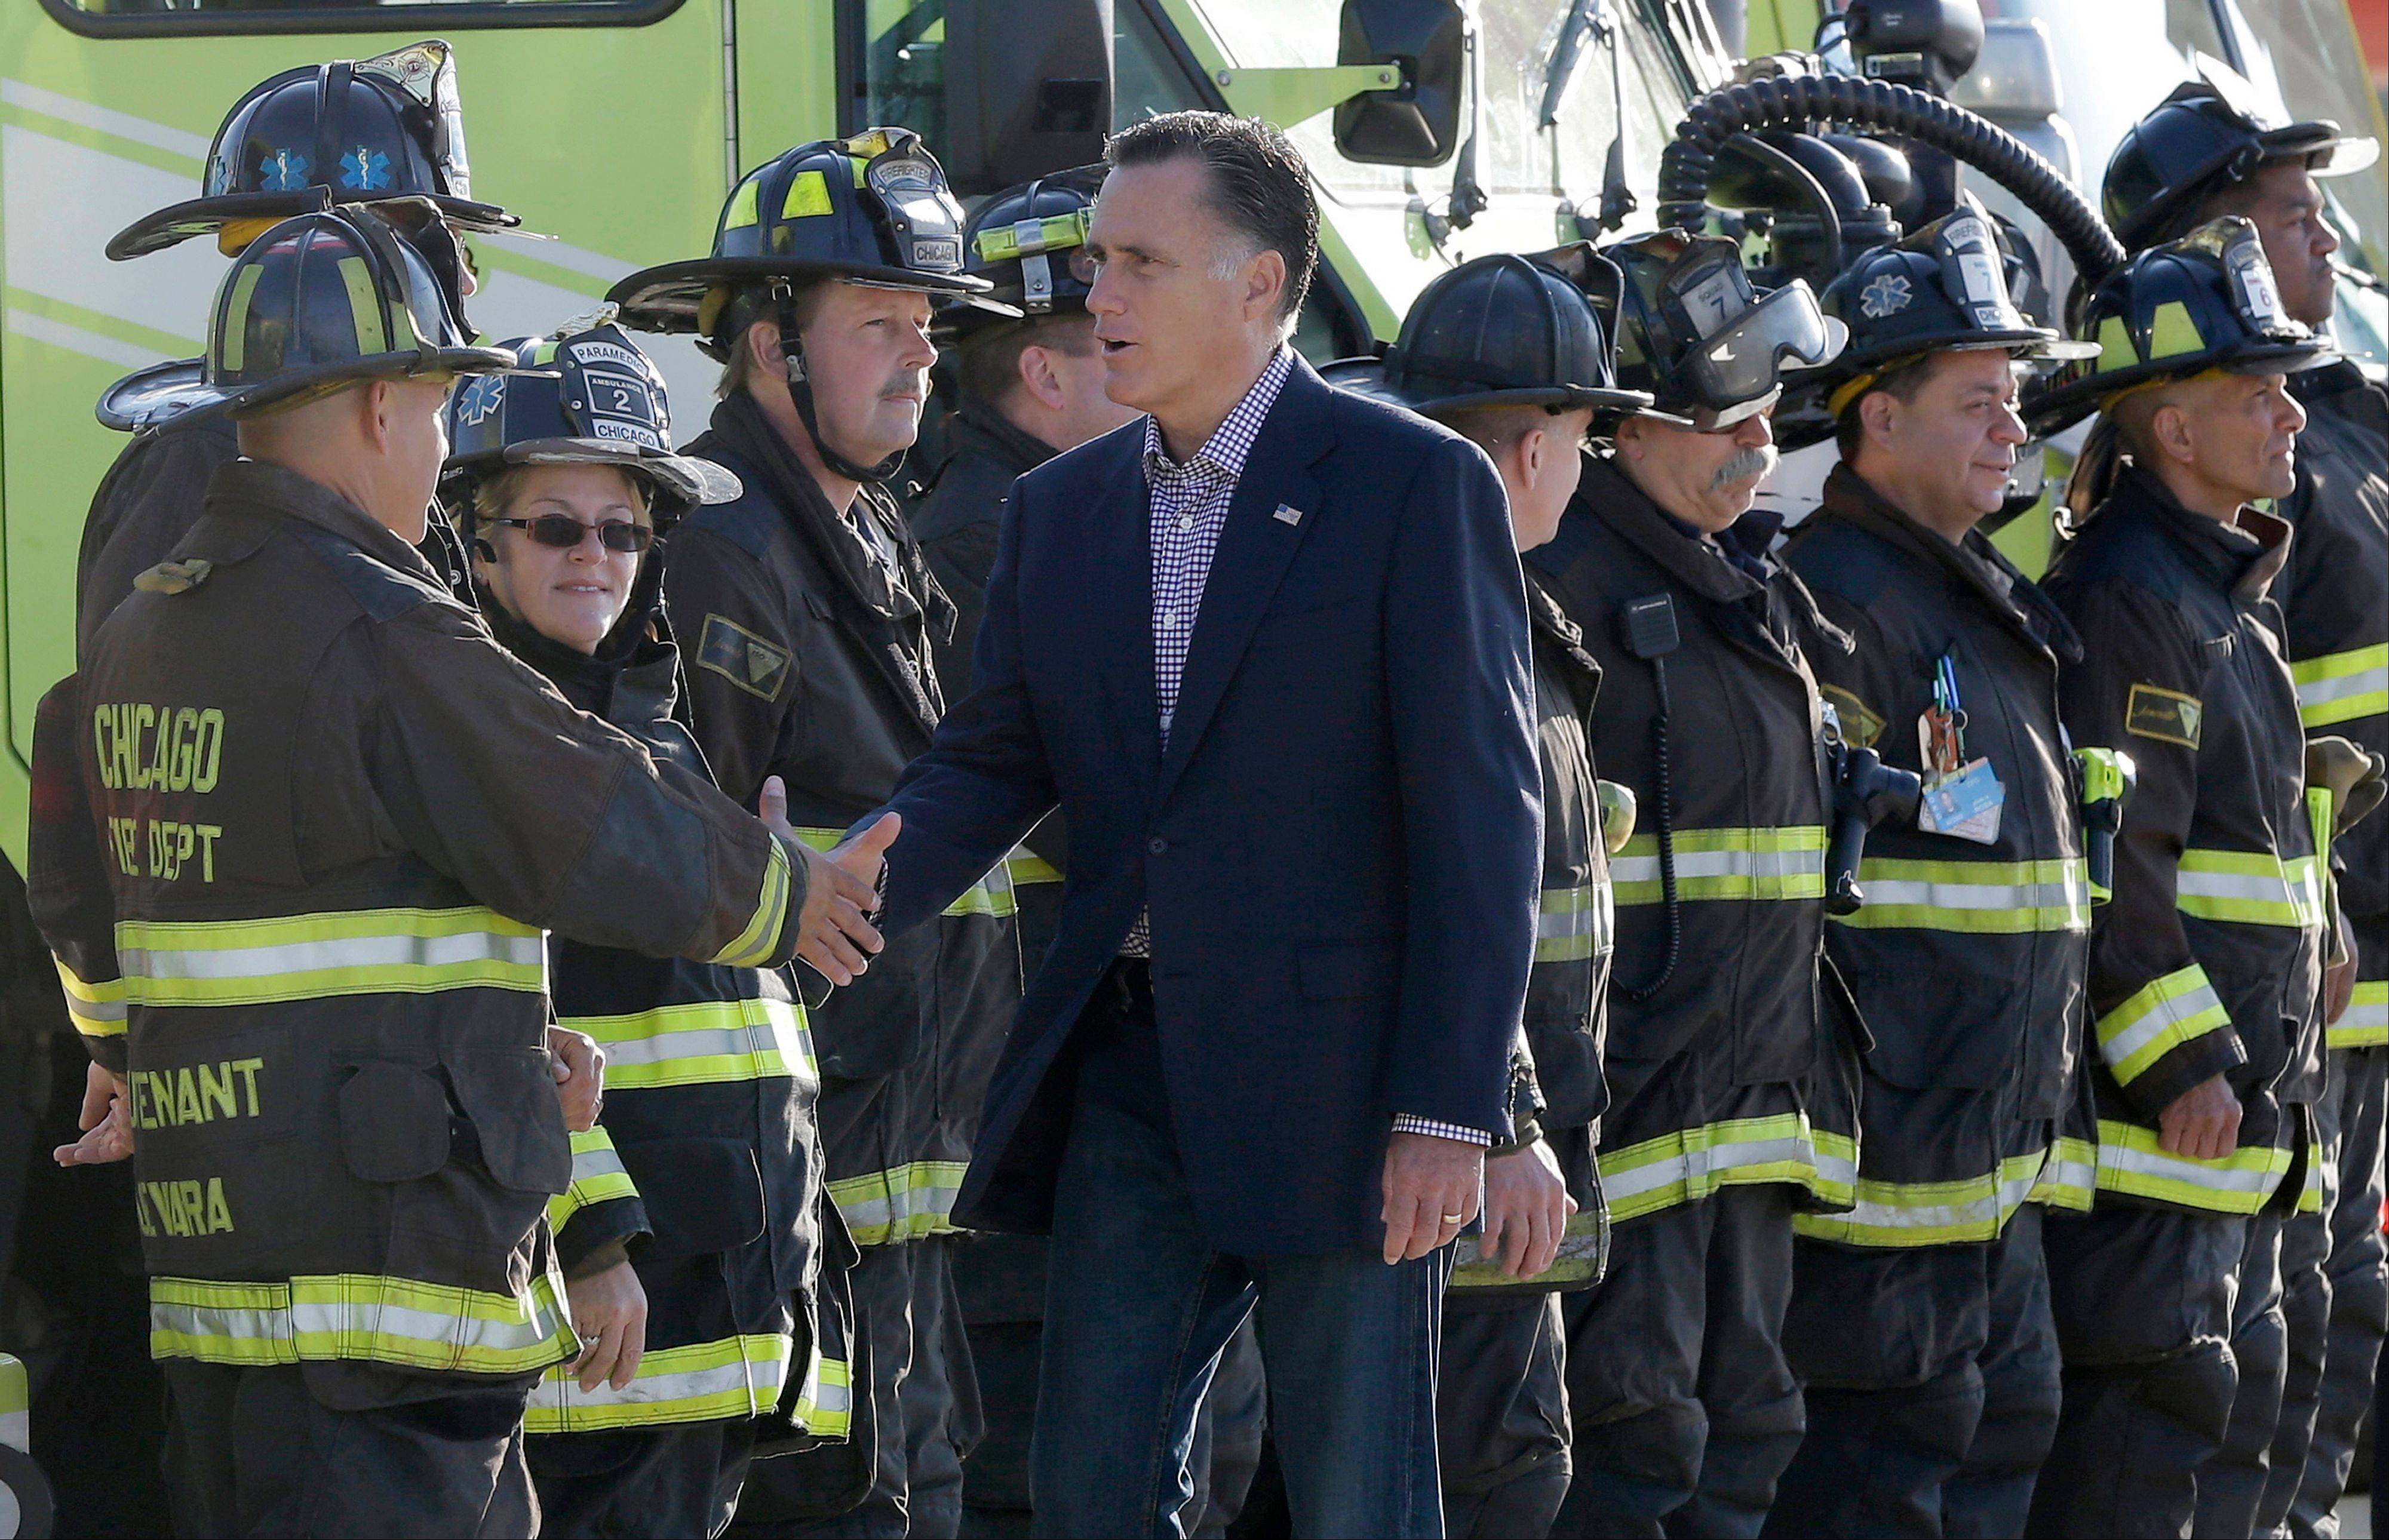 Republican presidential candidate Mitt Romney greets firefighters at Chicago O'Hare International Airport, Tuesday, Sept. 11, 2012.